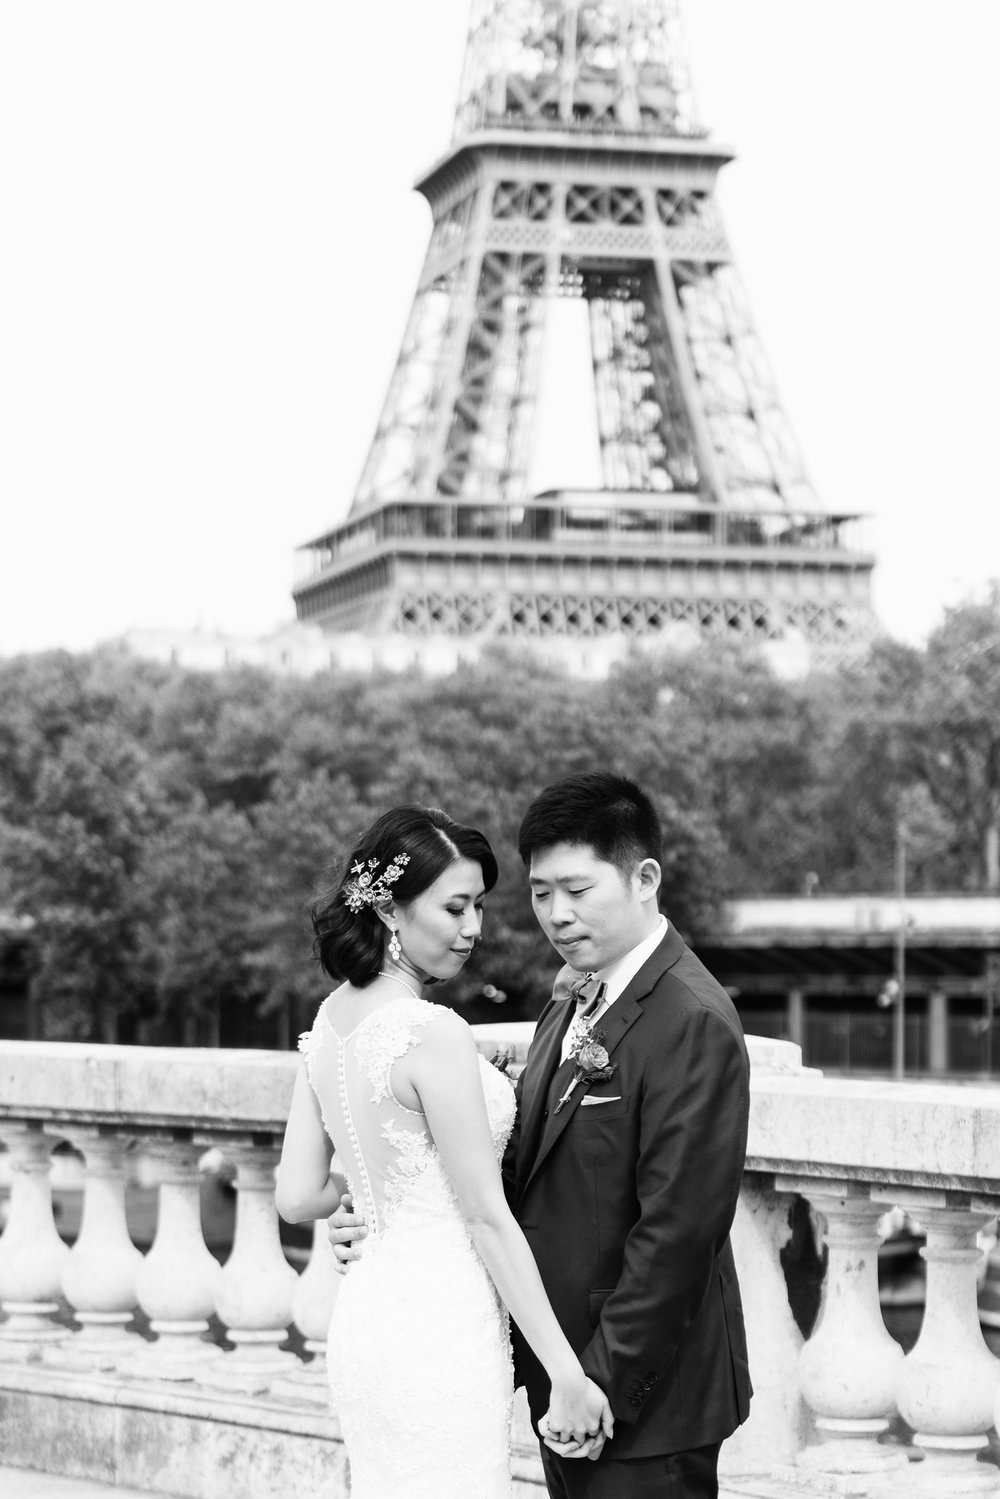 314-katie-mitchell-paris-wedding-elopement-photographer-france.jpg